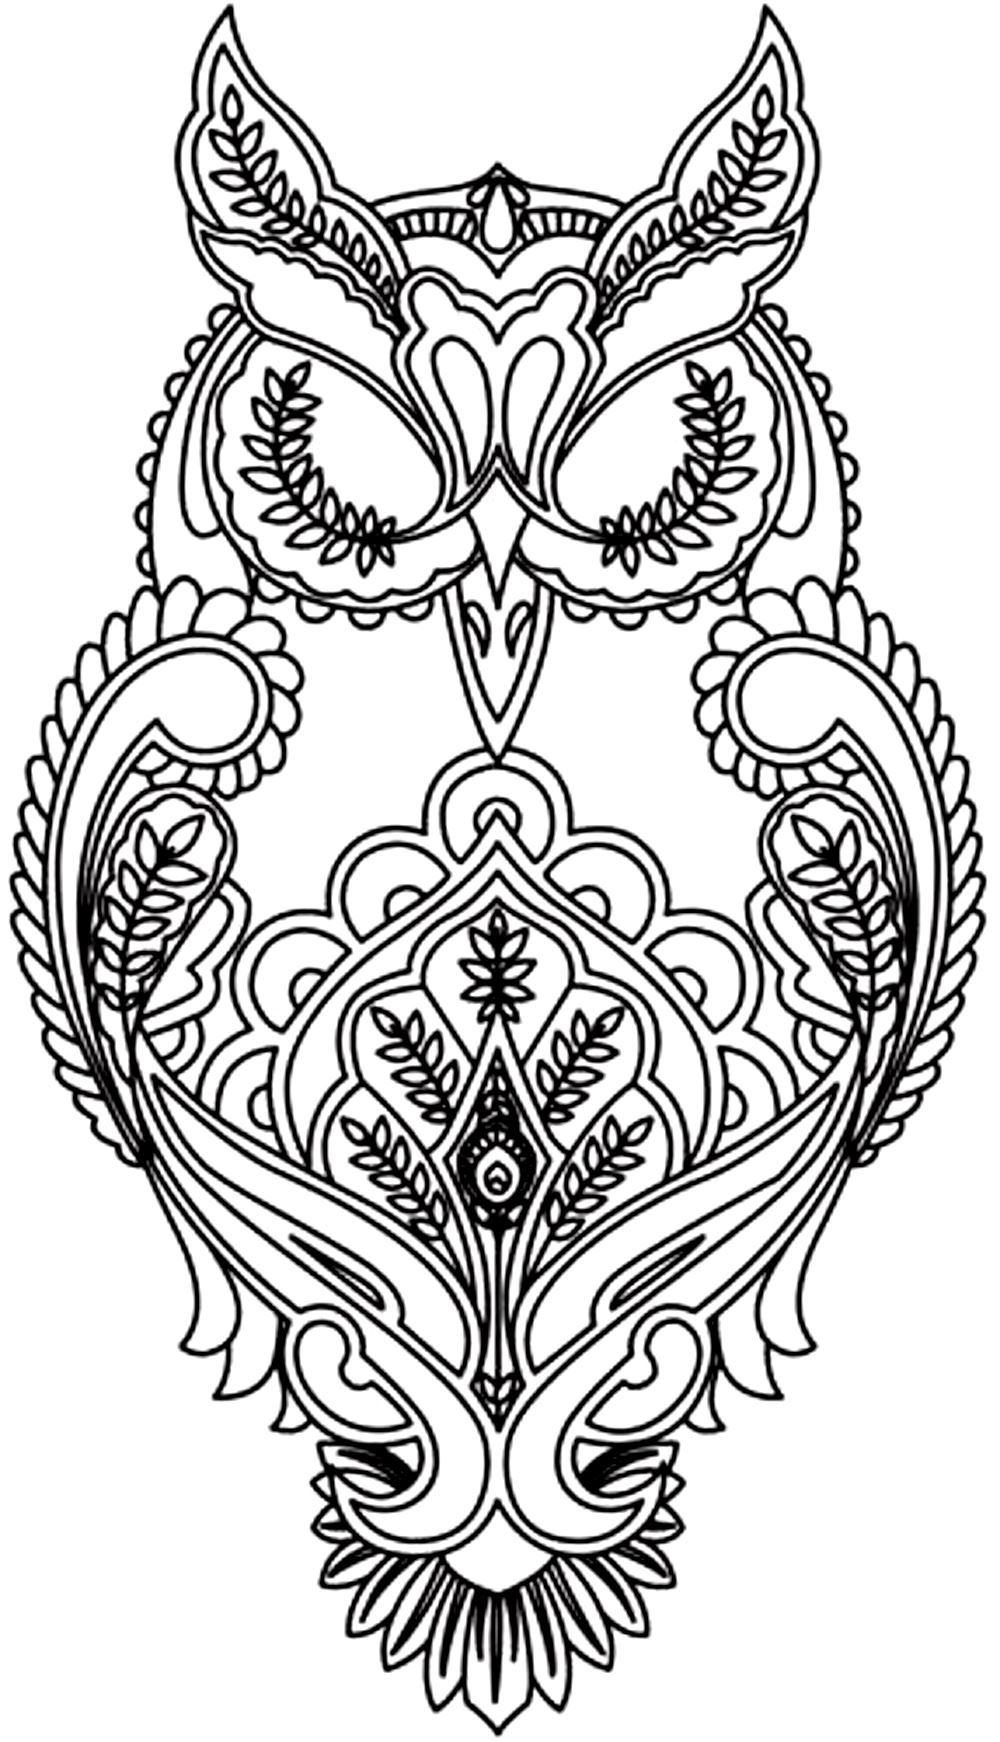 Animal - Coloring Pages for adults - Page 4